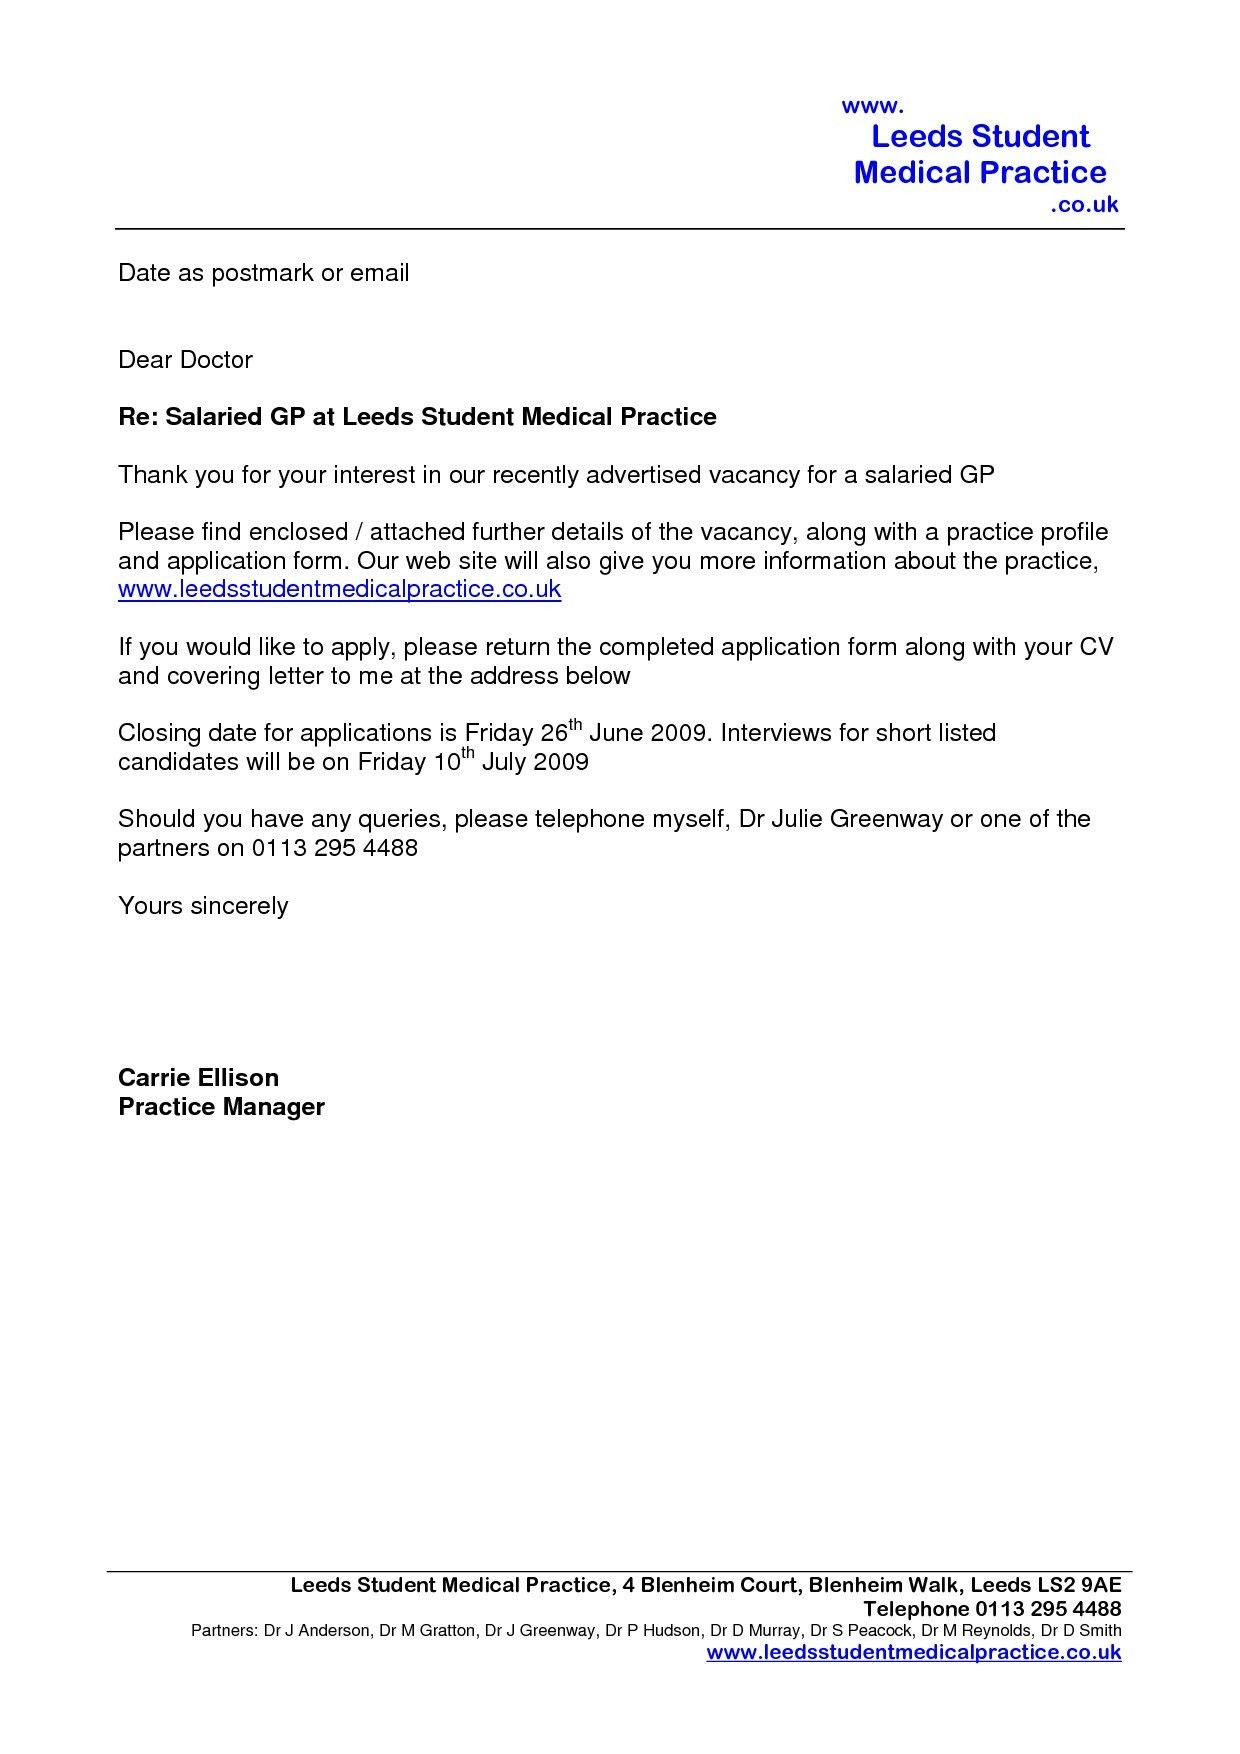 Email Cover Letter Template Uk Cover letter for resume